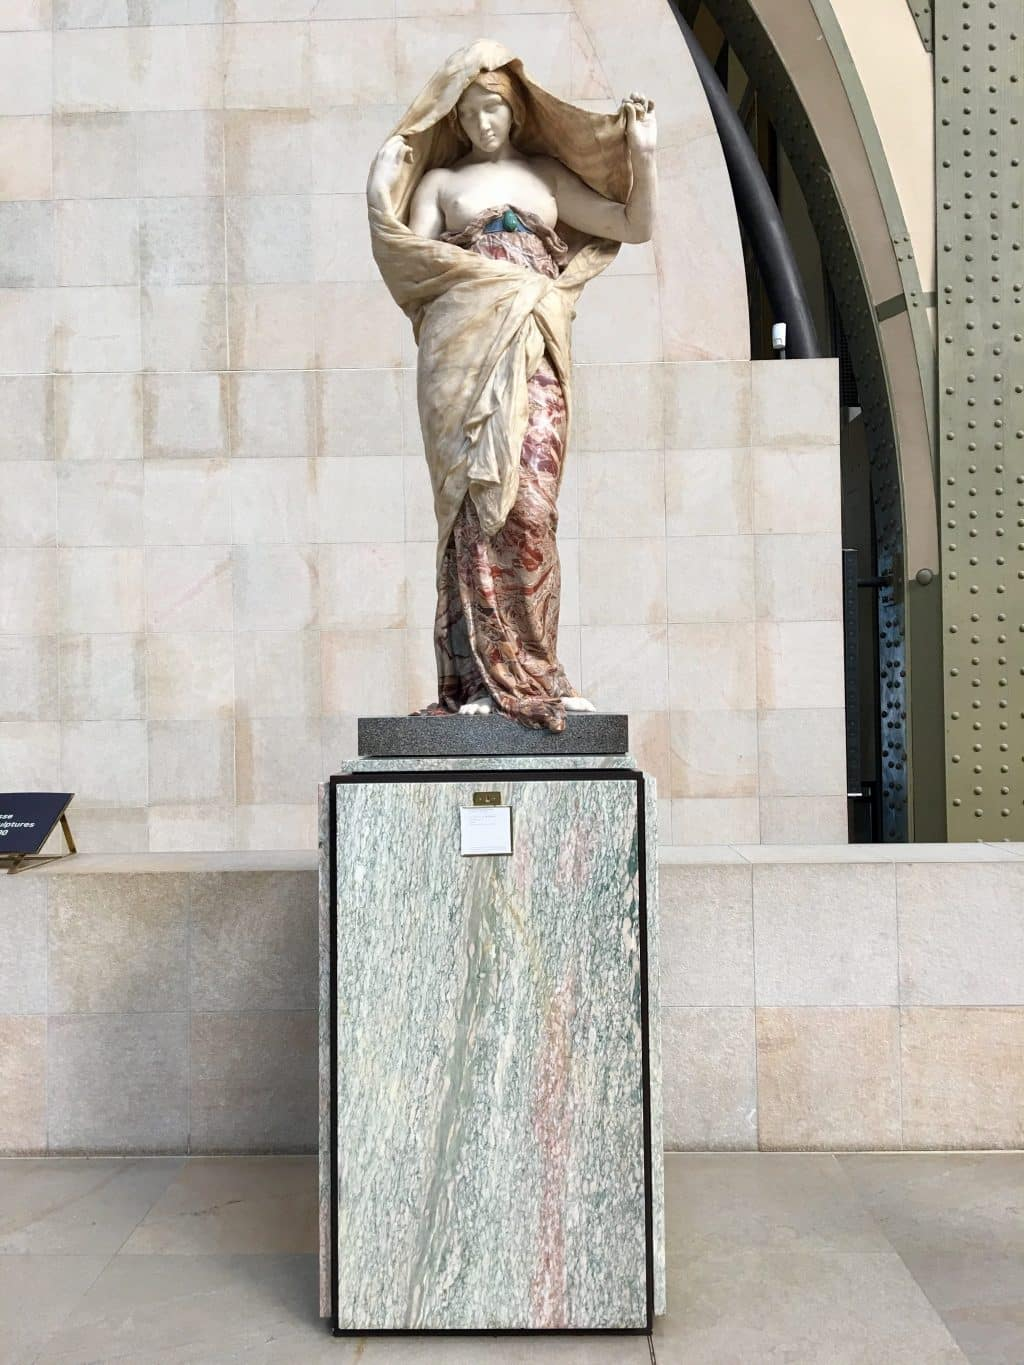 Beautiful sculpture in marble showing all its beautiful colors